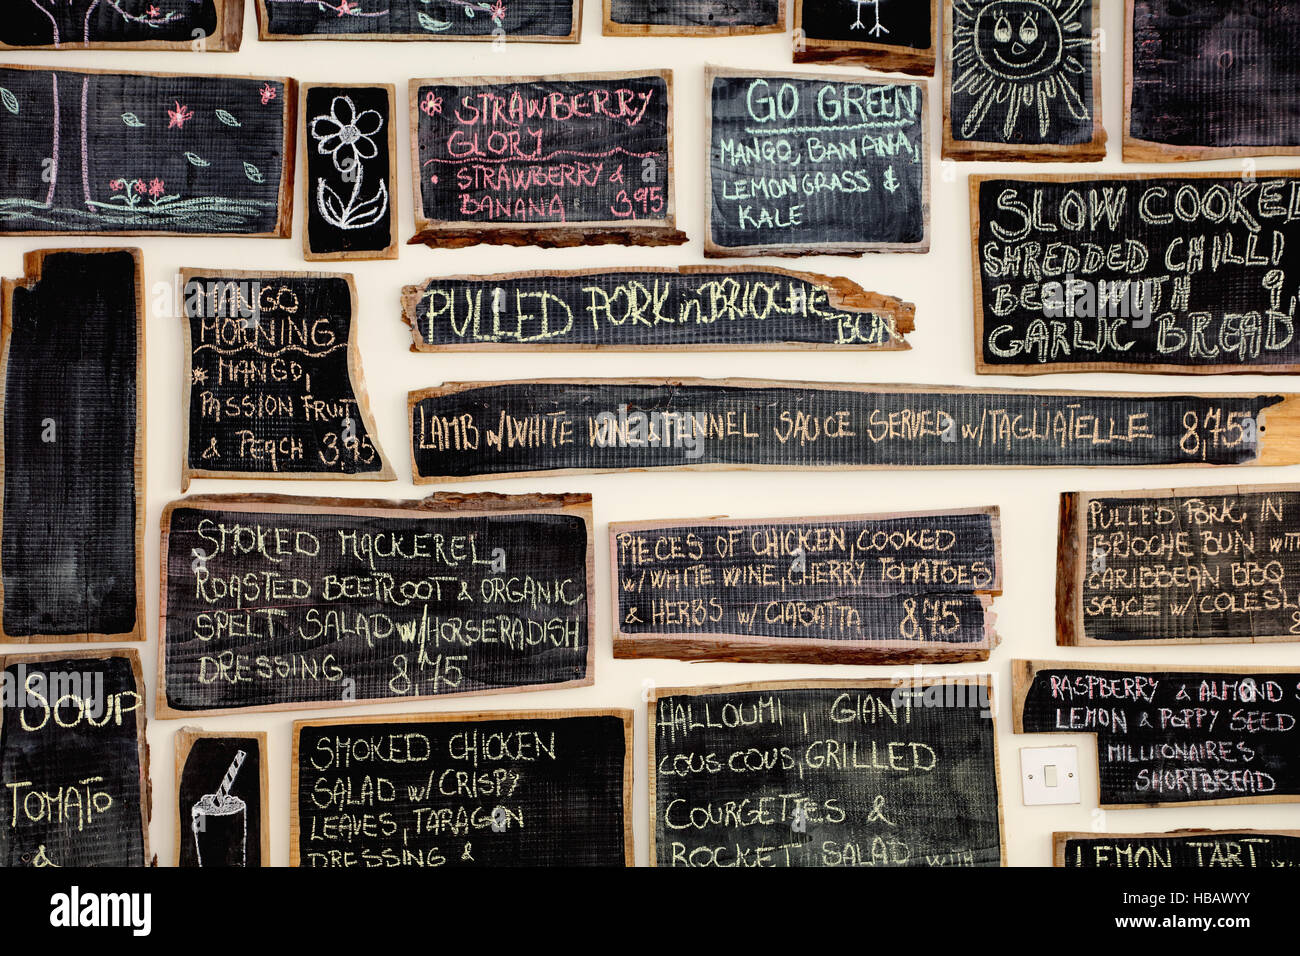 Quirky coffee shop interior with menu on chalked blackboards - Stock Image